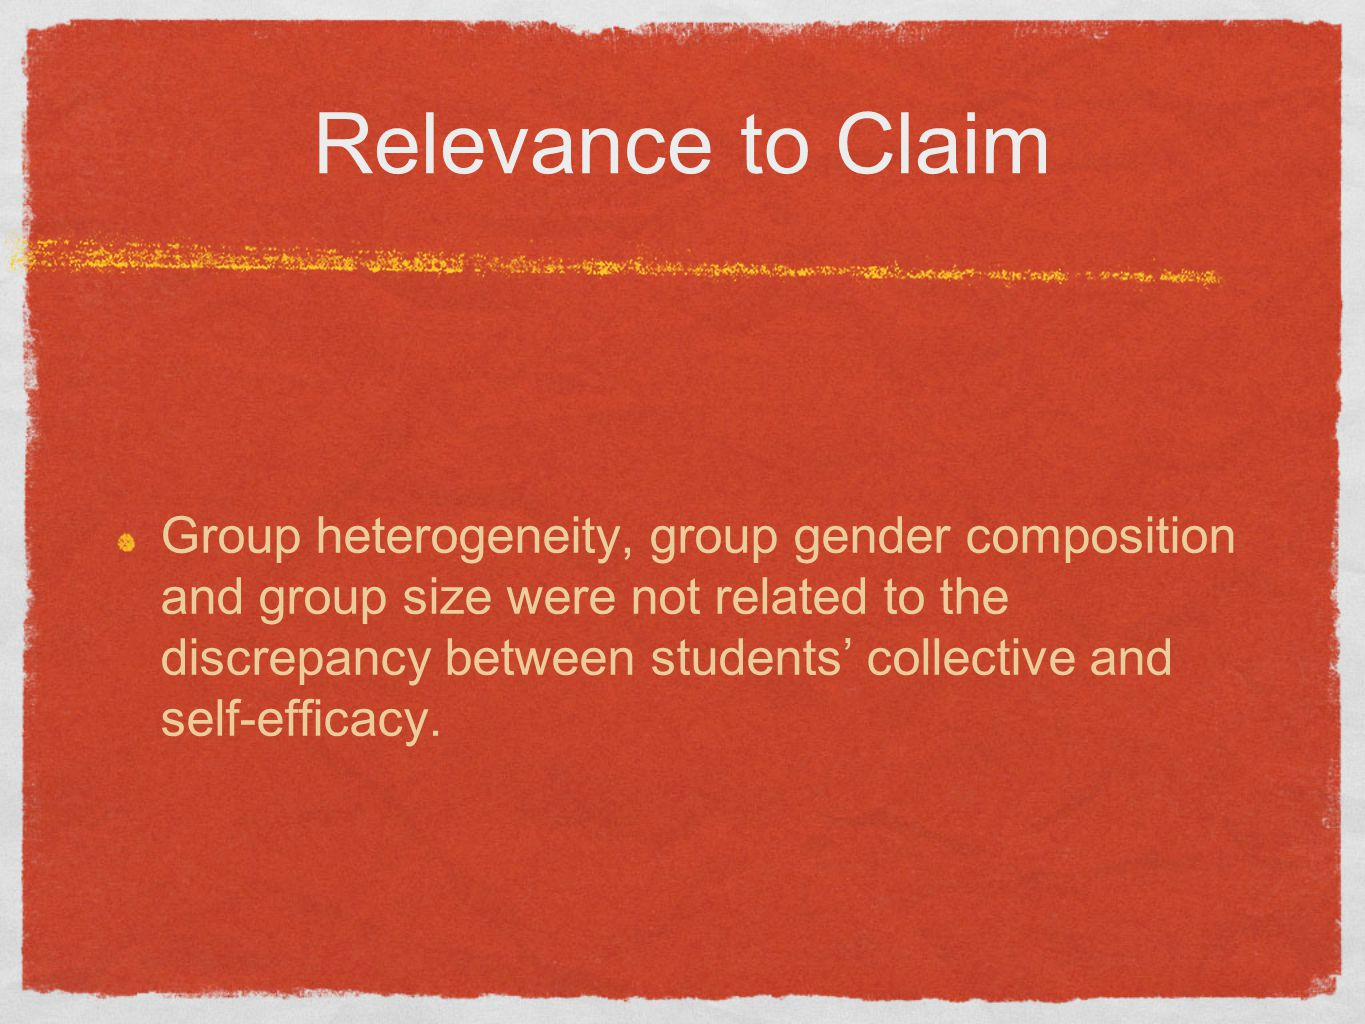 Relevance to Claim Group heterogeneity, group gender composition and group size were not related to the discrepancy between students' collective and s